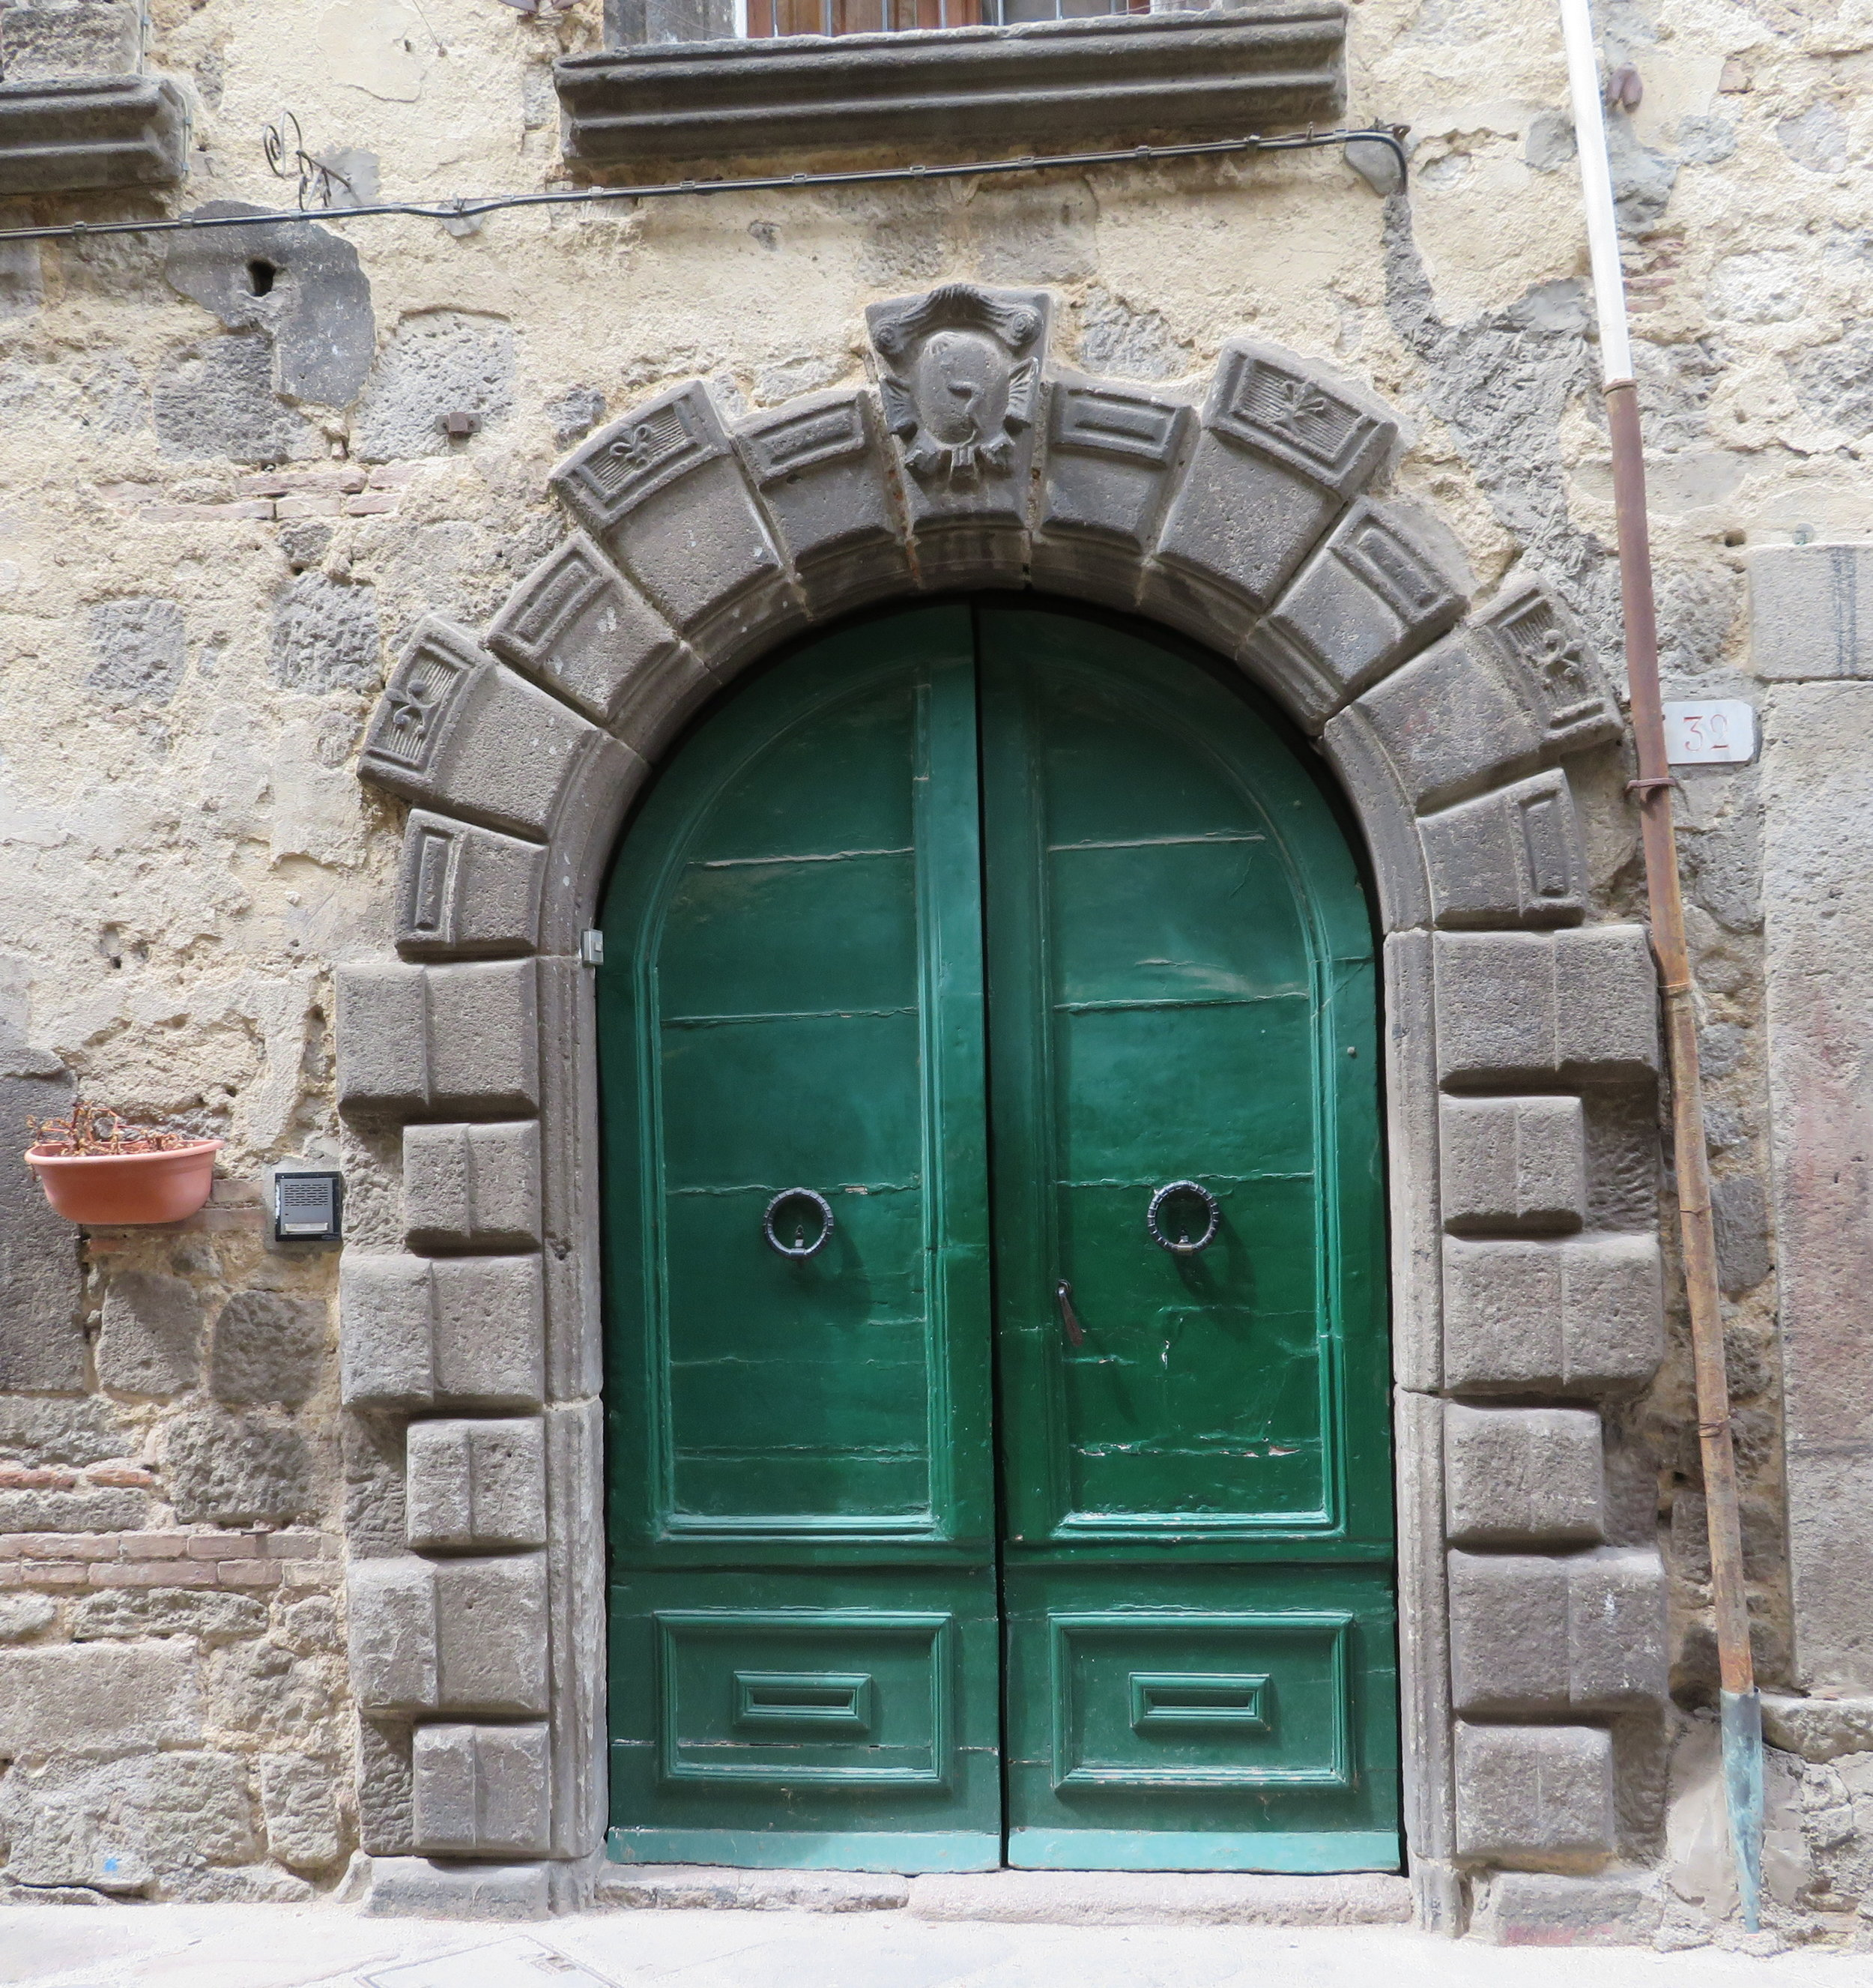 A fine arched doorway